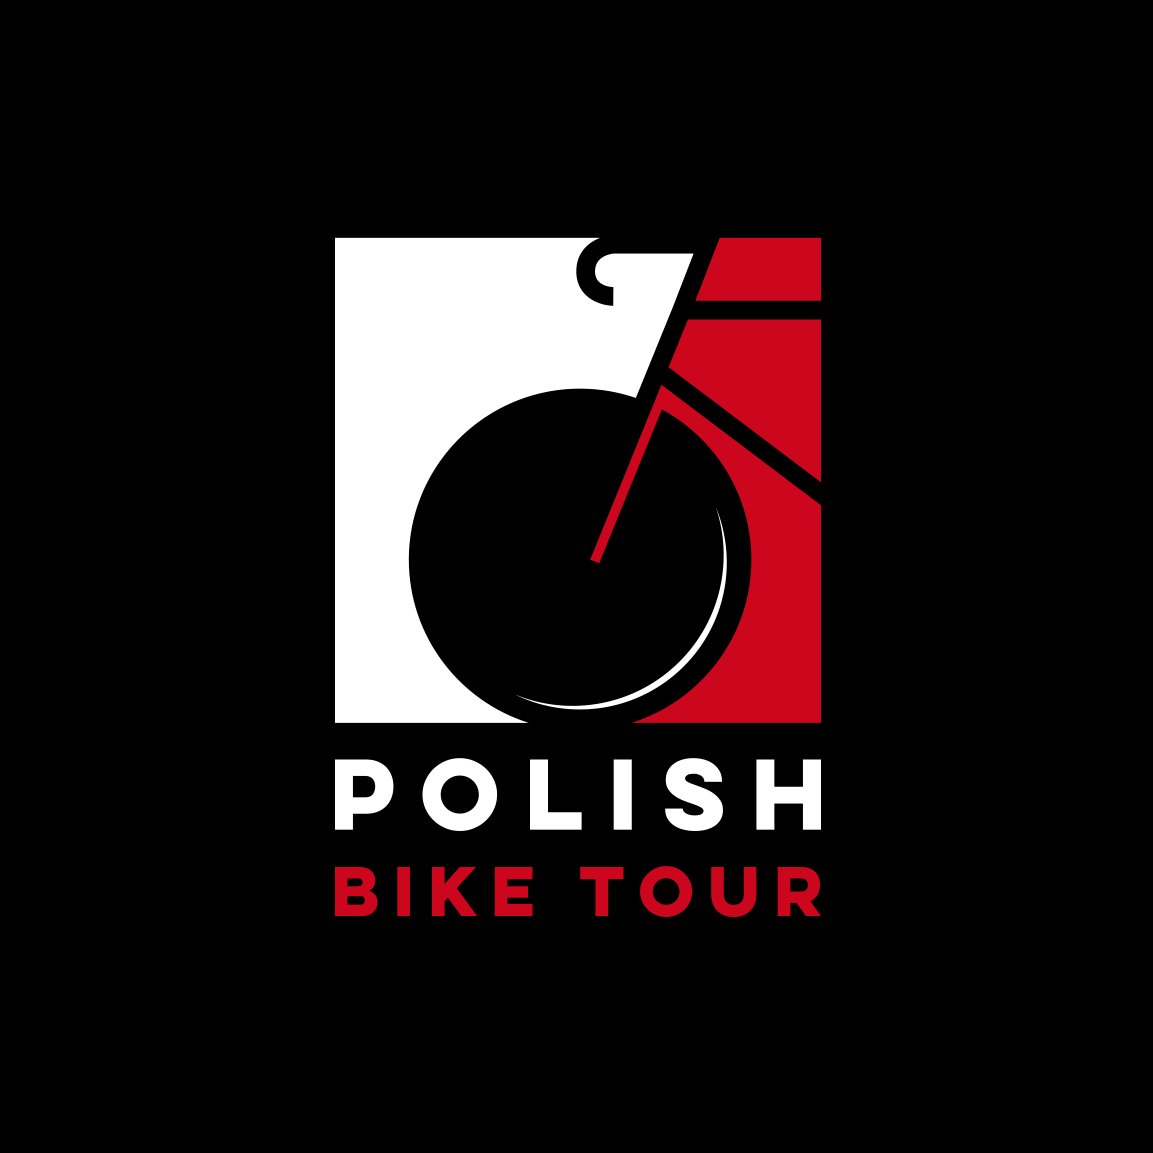 polish bike tour